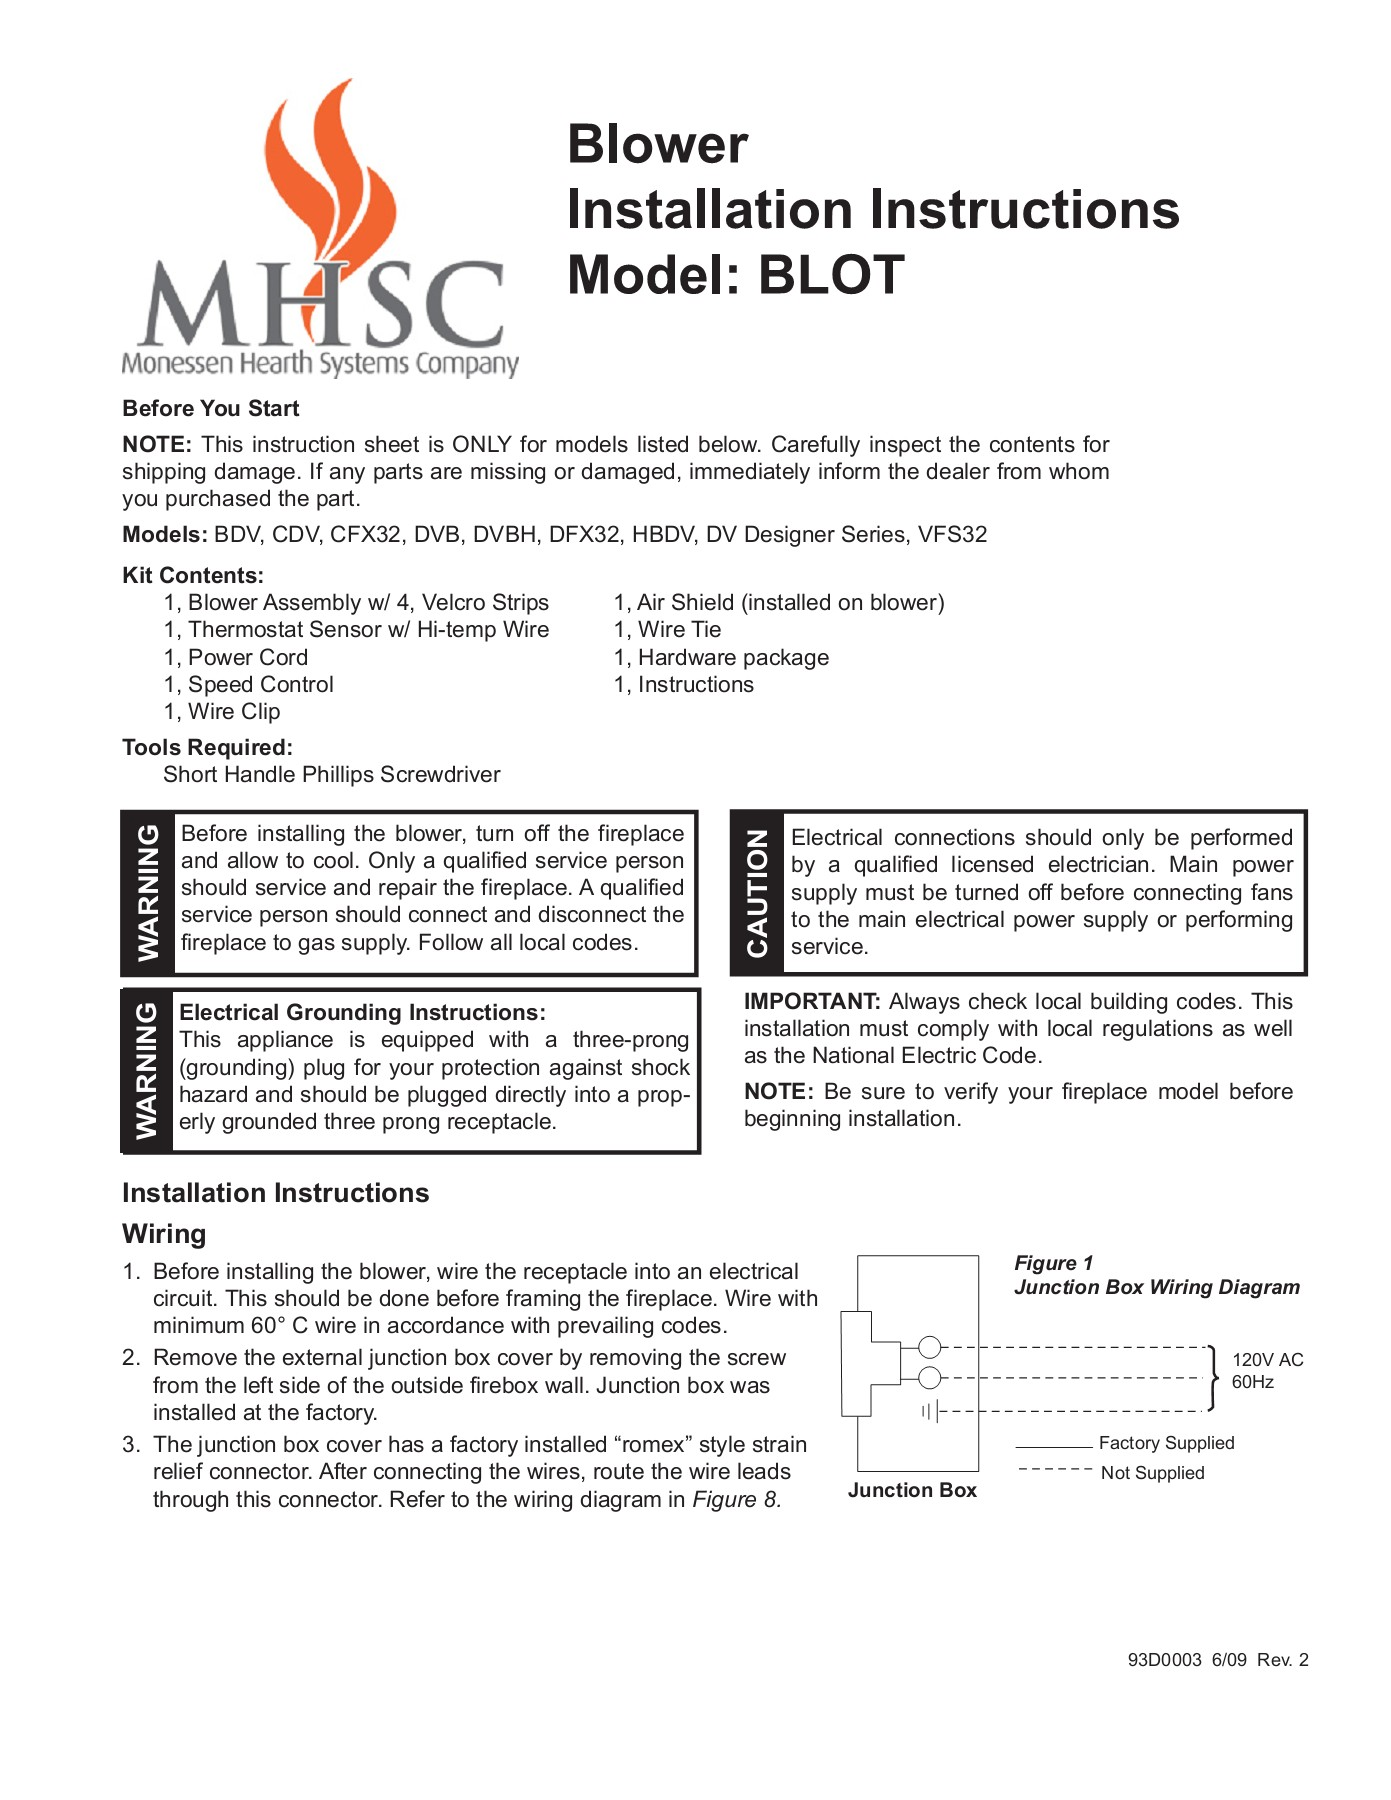 Blower Installation Instructions Model Blot Junction Box Wiring Regulations